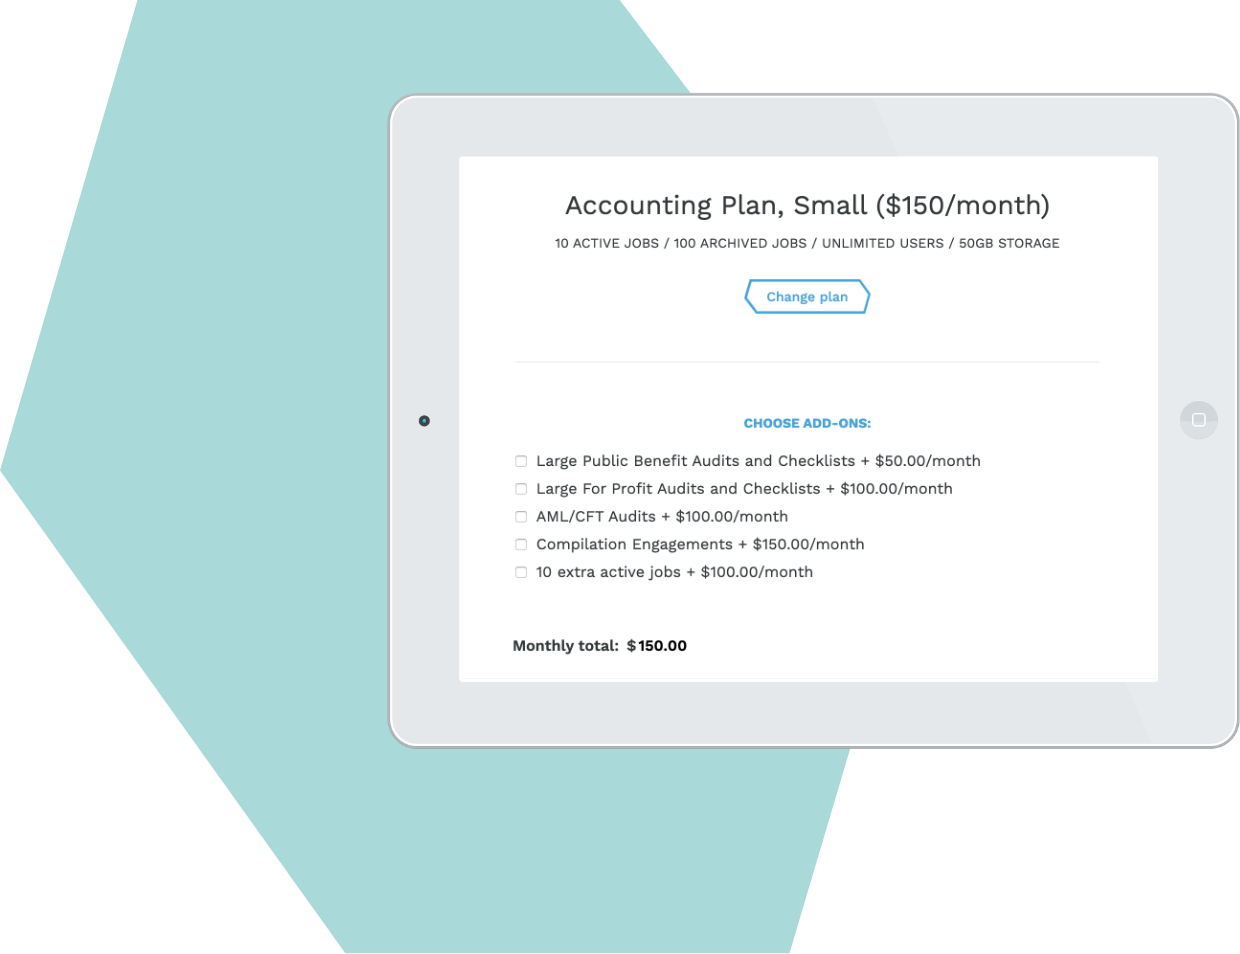 Screenshot for Pricing levels and features to suit your firm size and client type